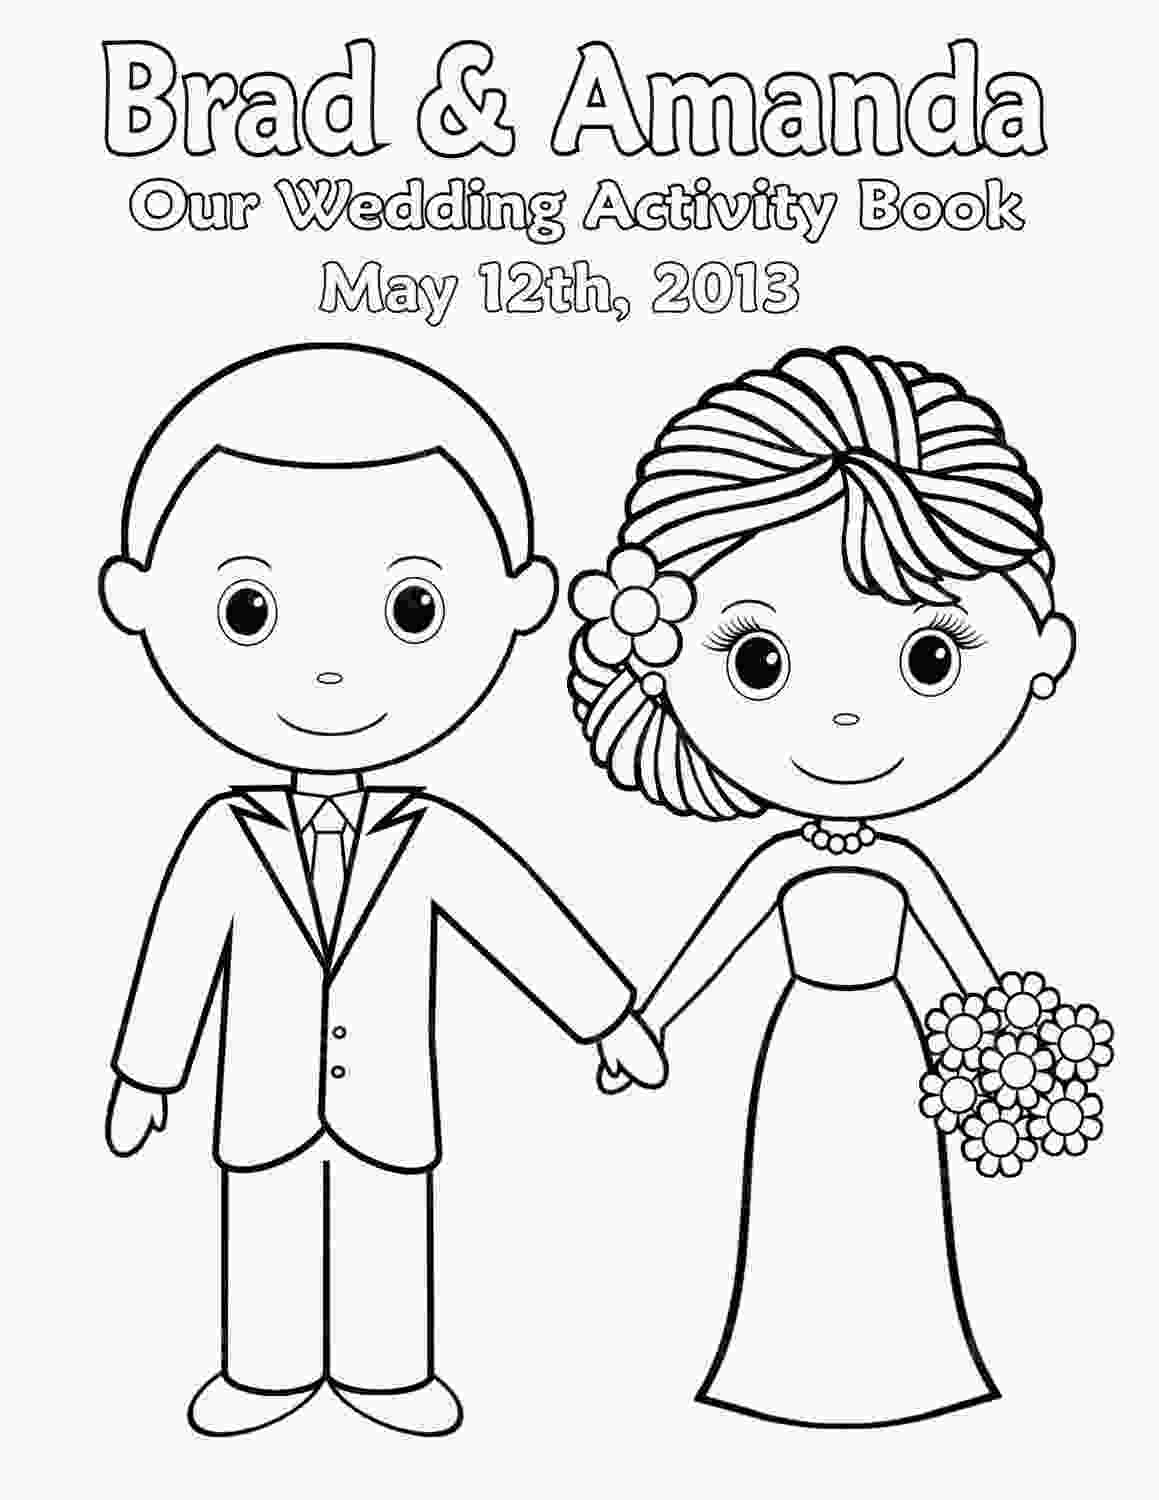 coloring wedding activities for kids printable personalized wedding coloring activity book